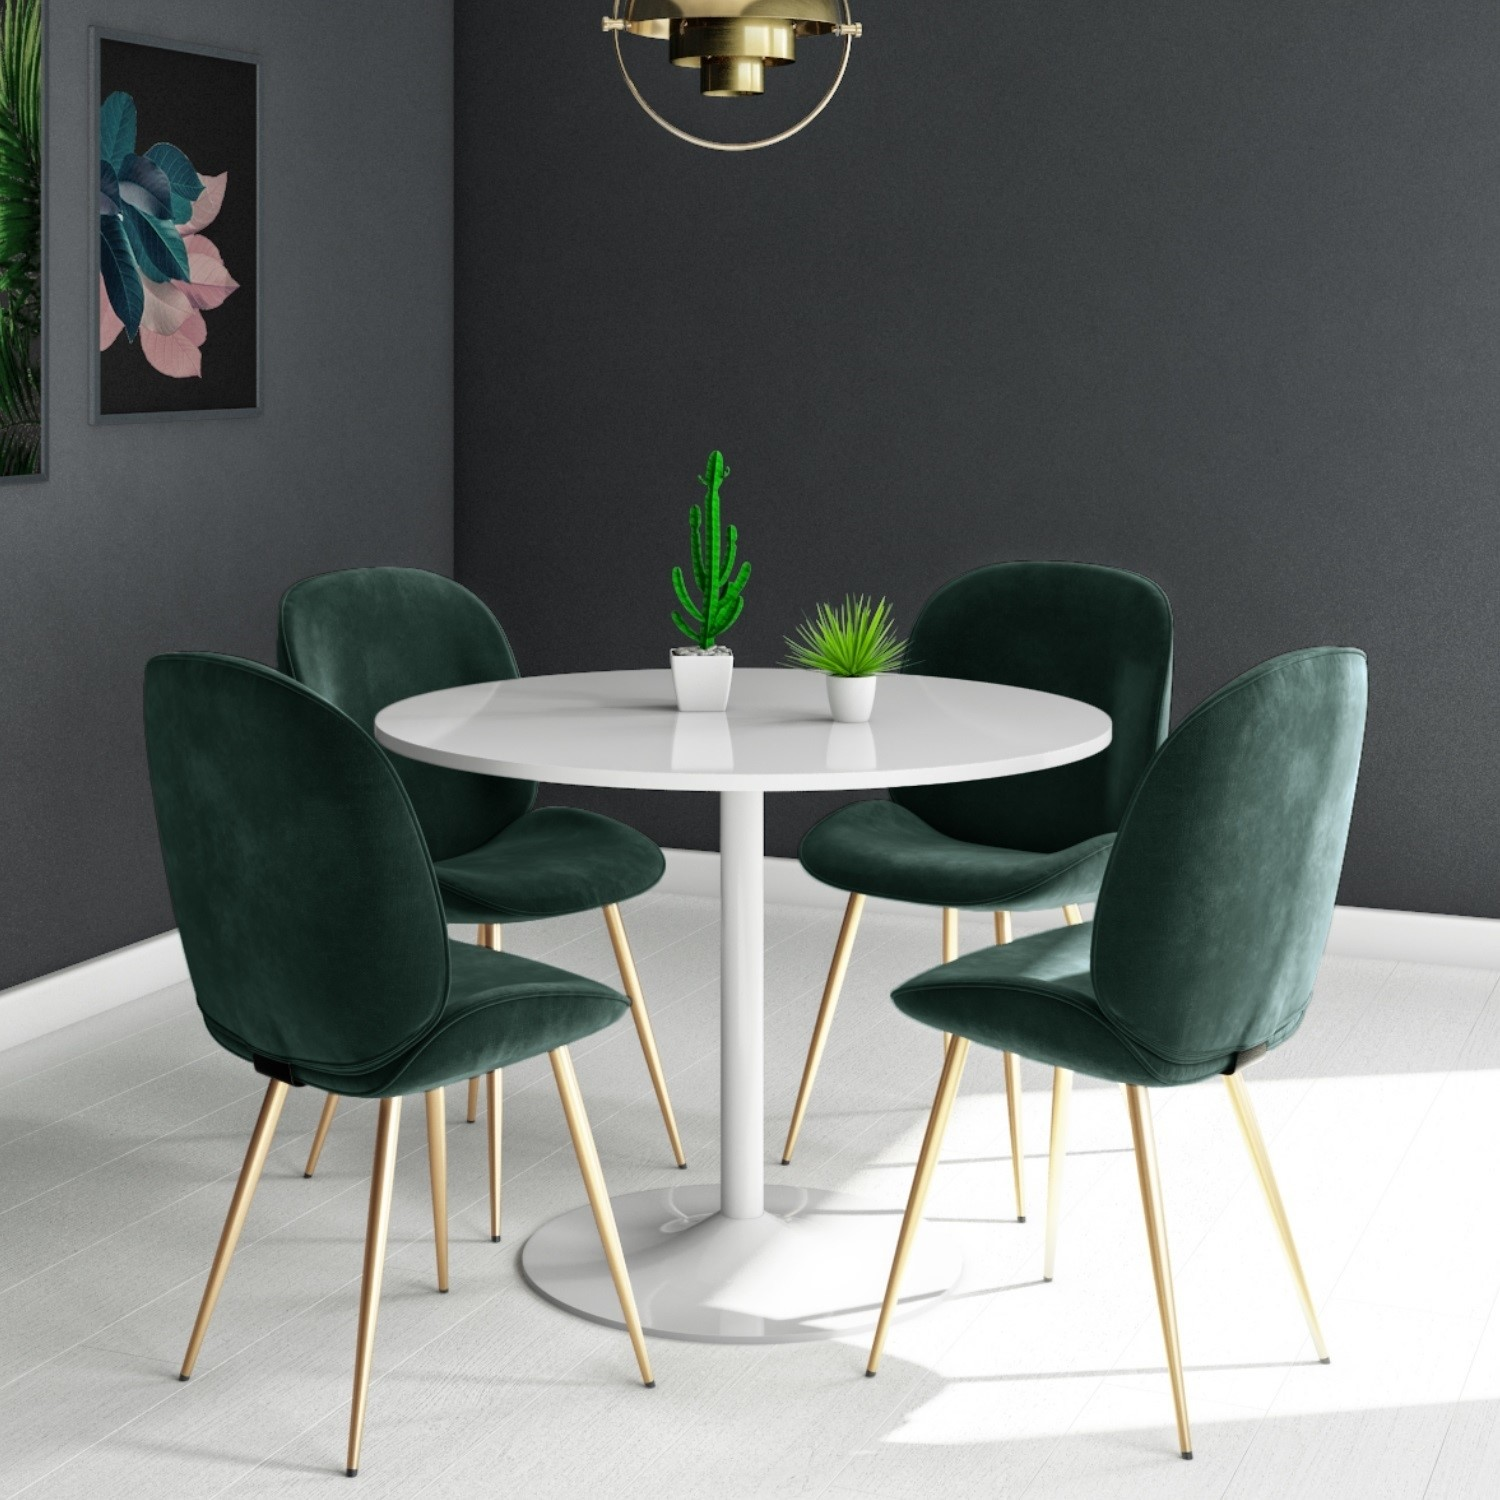 Brilliant Jenna White Round Table 4 Chairs In Green Velvet With Gold Legs Dailytribune Chair Design For Home Dailytribuneorg